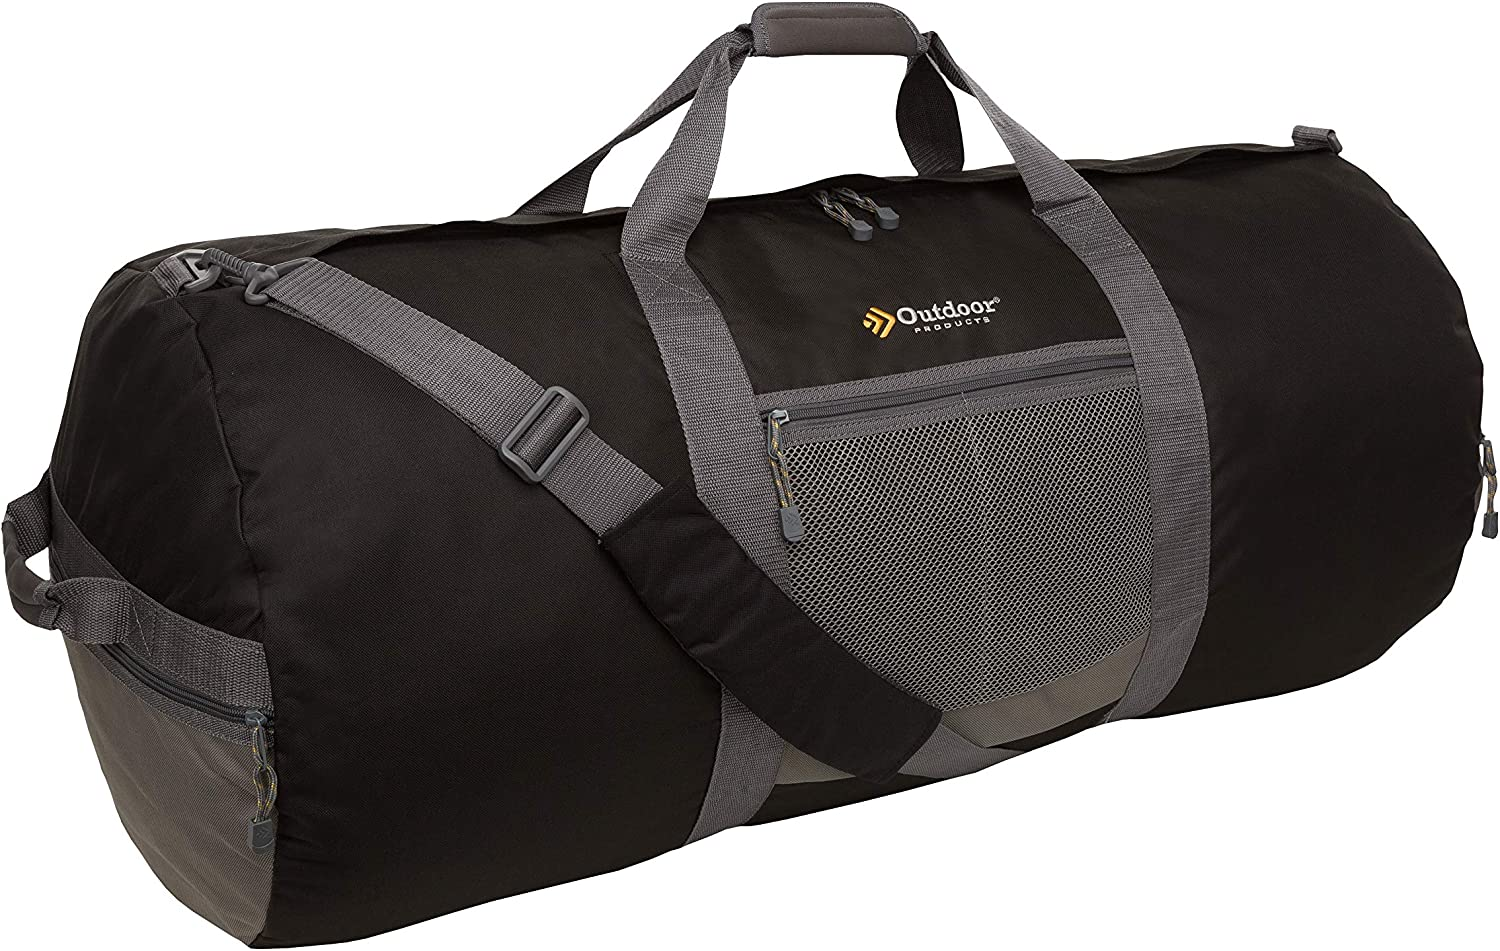 Outdoor Products Utility Duffle